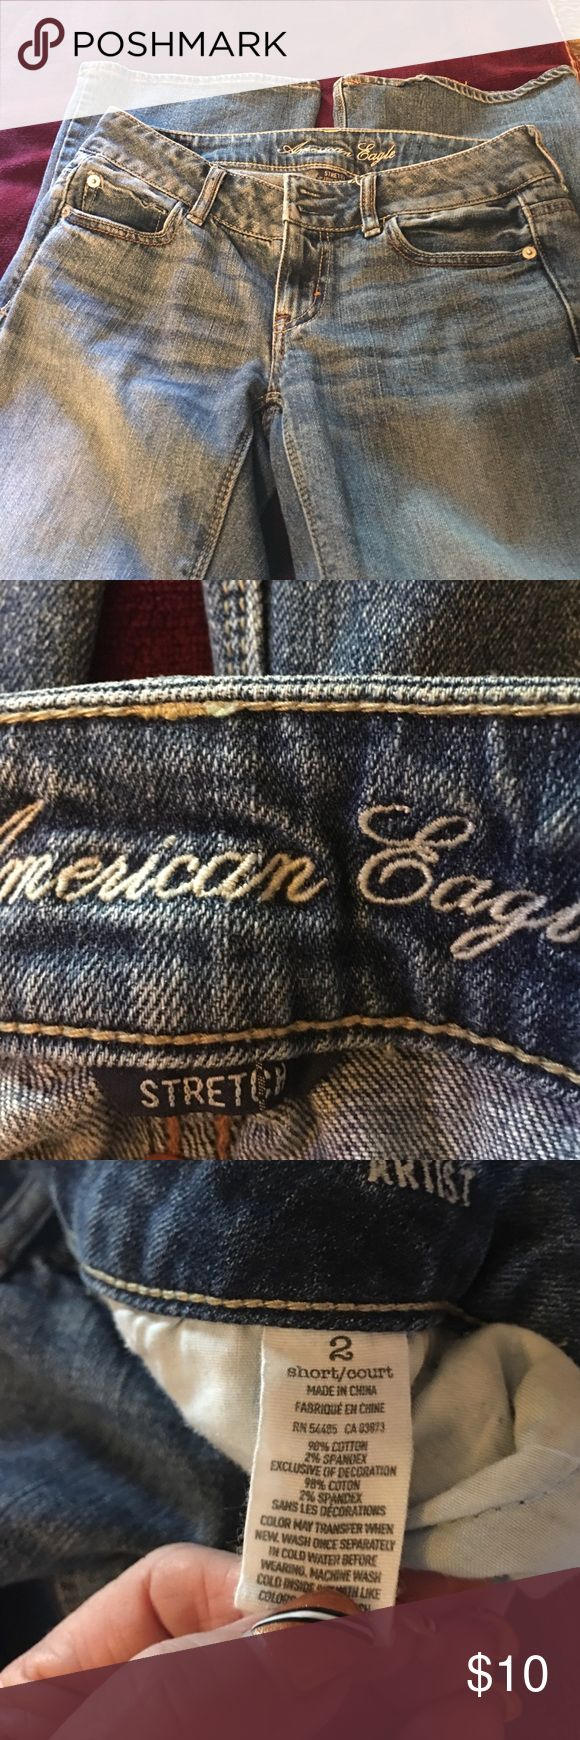 America eagle jeans size2 Size2 wide leg American eagle jeans   Please see pics for details American Eagle Outfitters Jeans Flare & Wide Leg